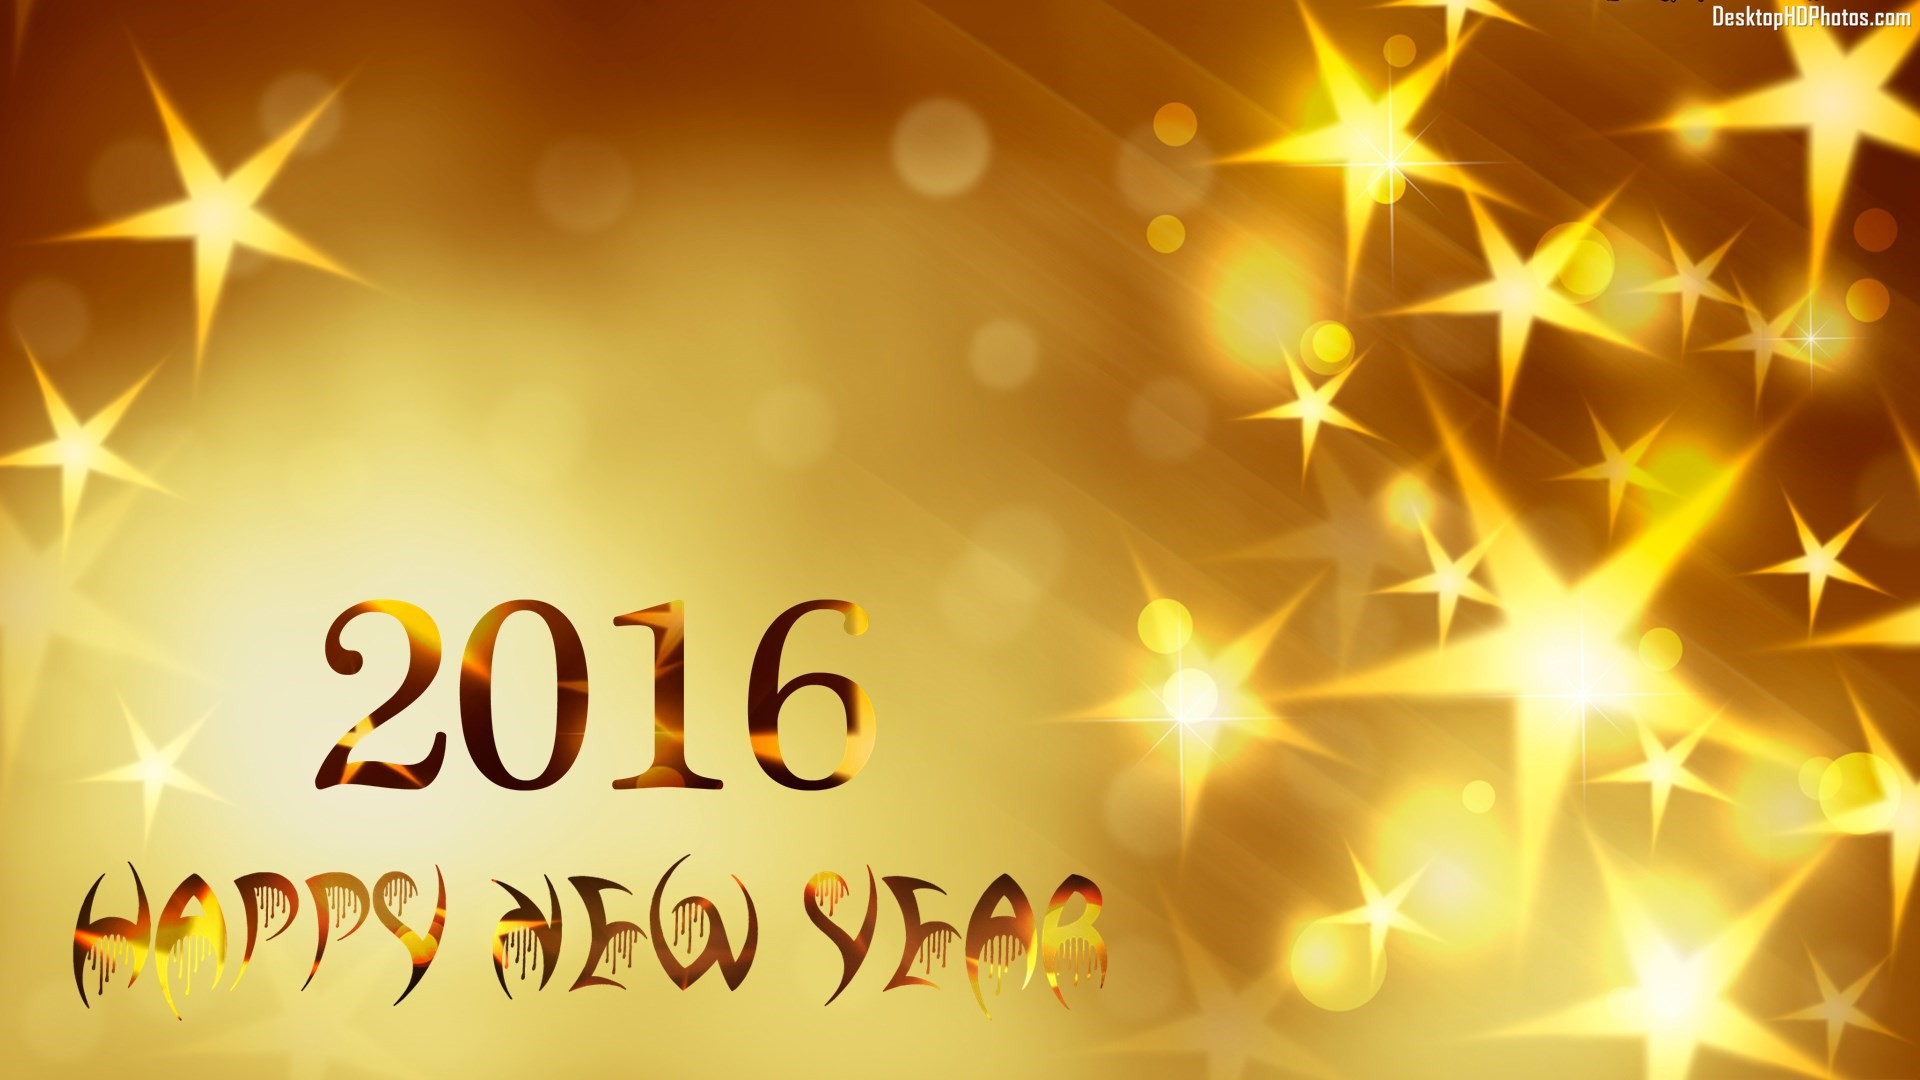 Download-Free-Happy-New-Year-Photos-http-www-welcomehappynewyear-com-download-free-happy-new-wallpaper-wpc5804297